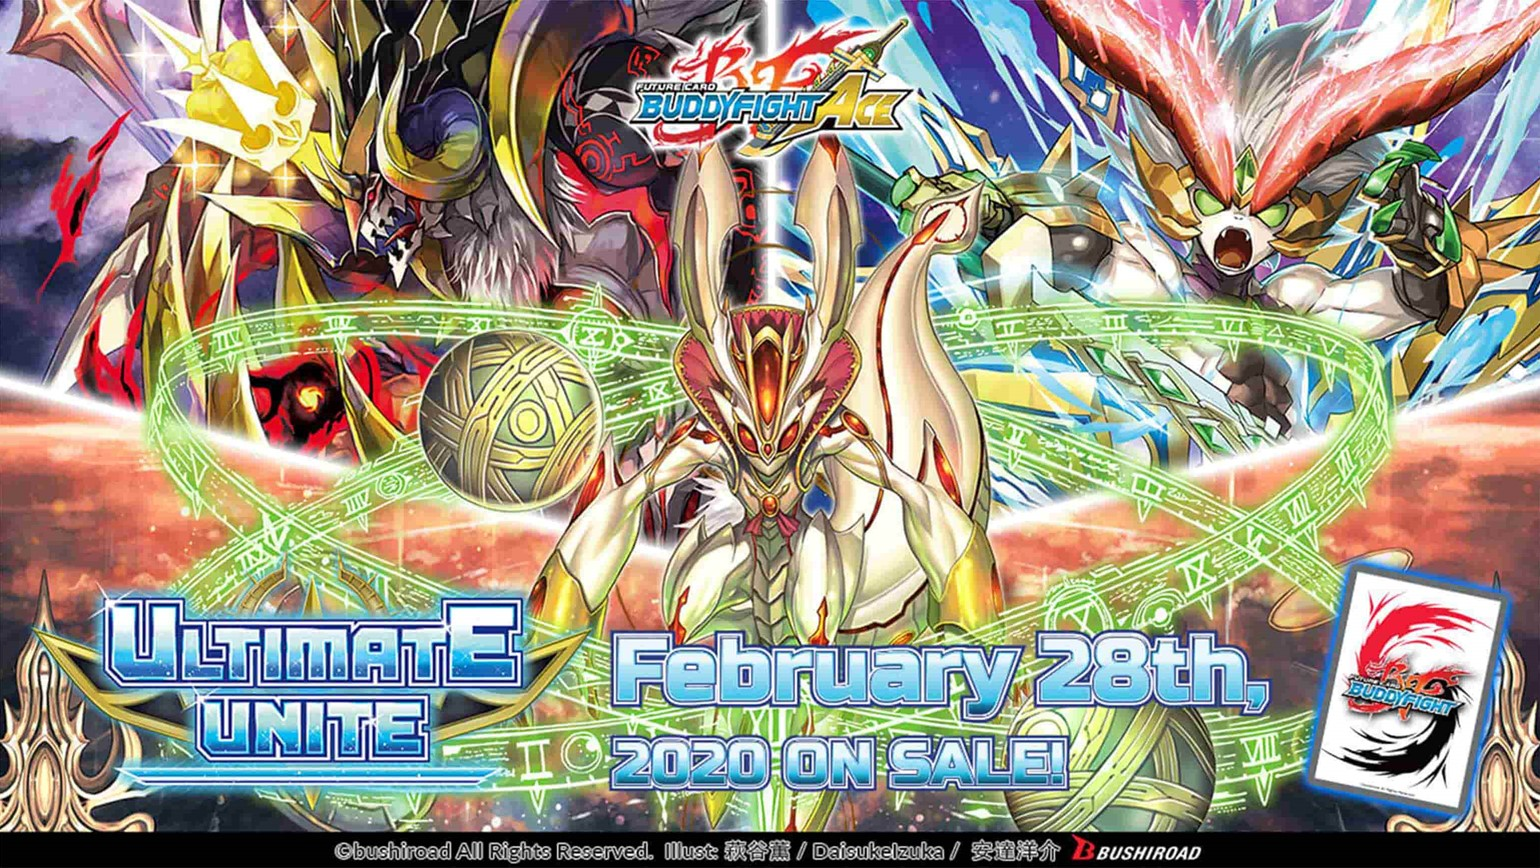 Future Card Buddyfight Ace Climax Booster Vol. 3 Ultimate Unite Coming February 28th